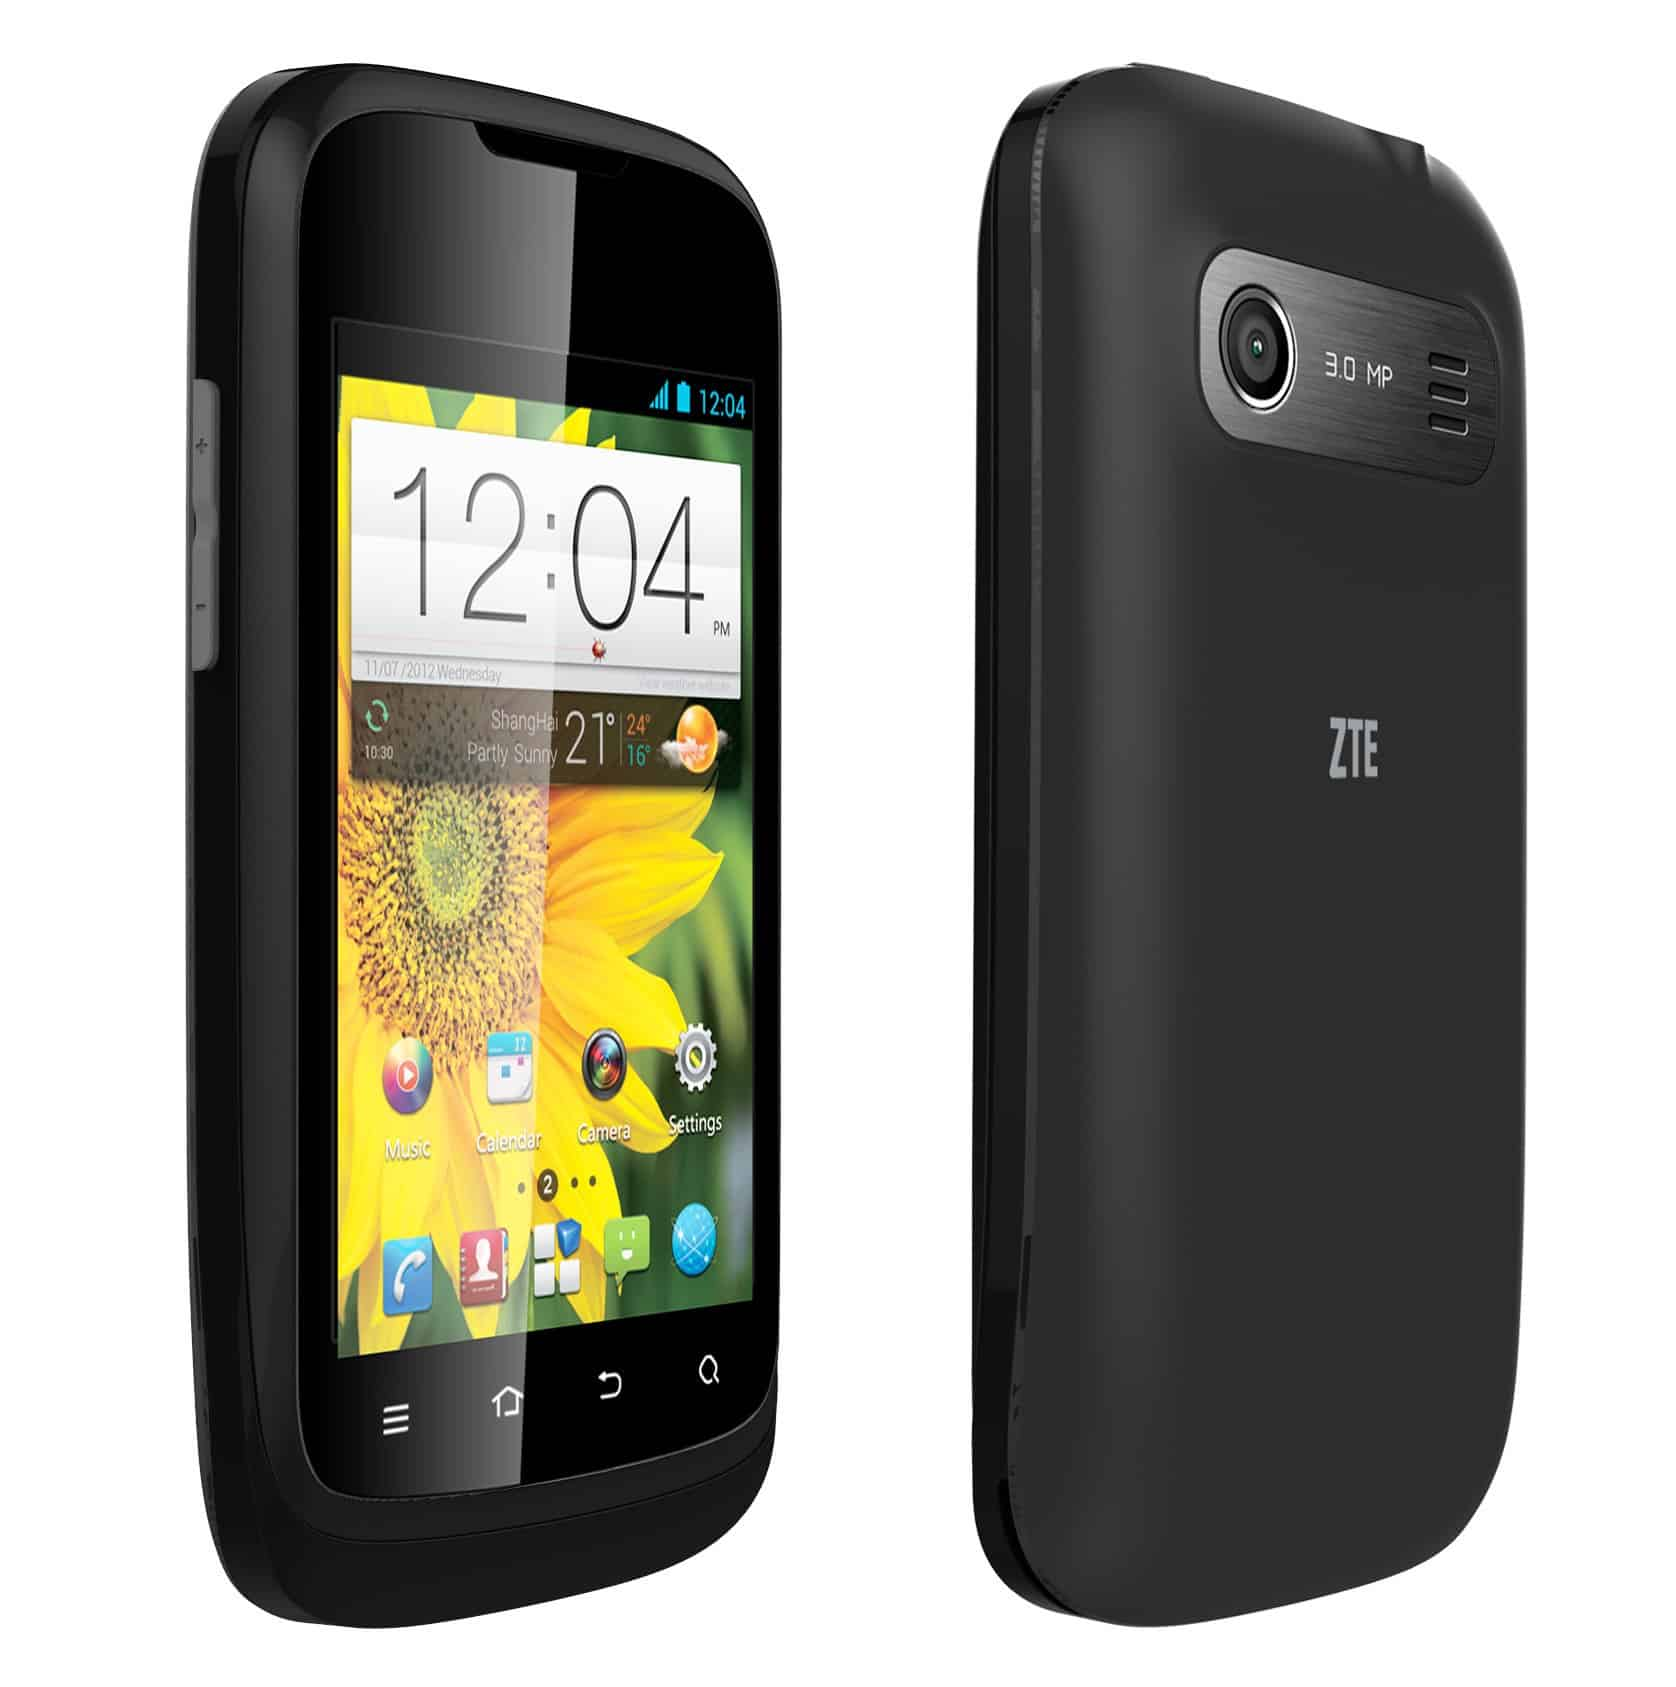 zte kis 3 manual are high end